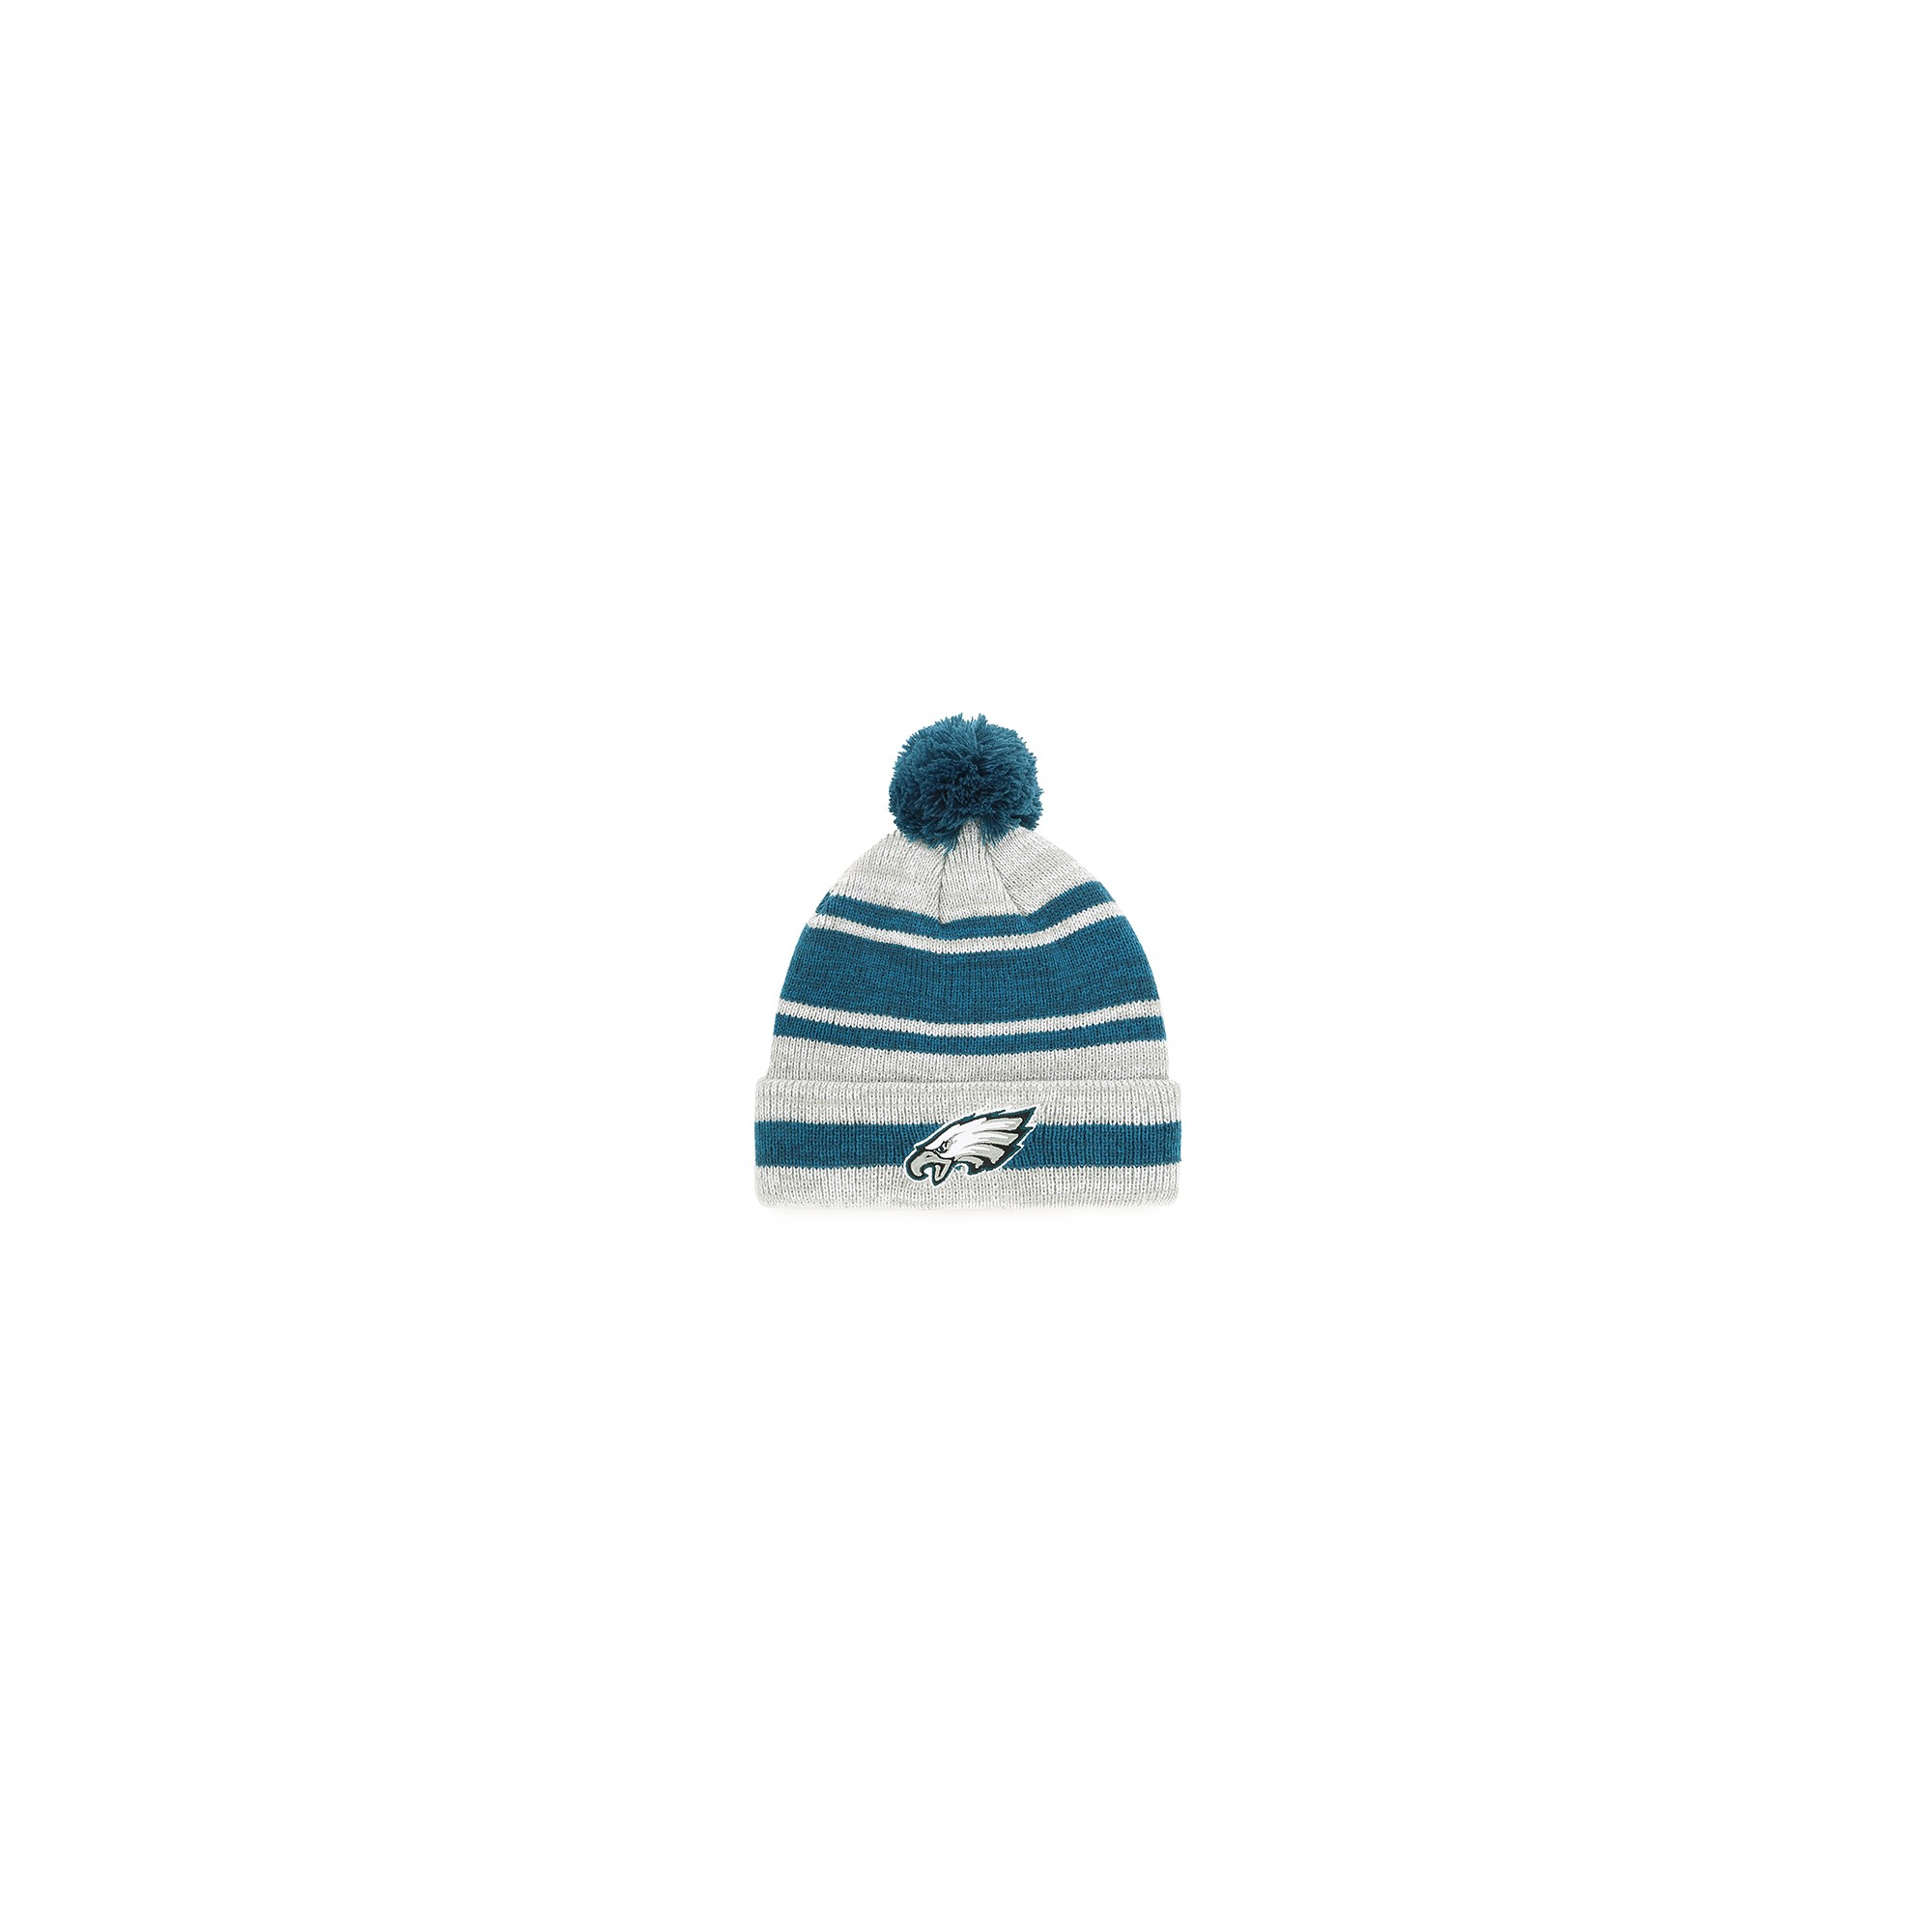 d7ebdc1acd7fd0 NFL Men's Philadelphia Eagles Sky Knit Hat | Products | Knitted hats ...